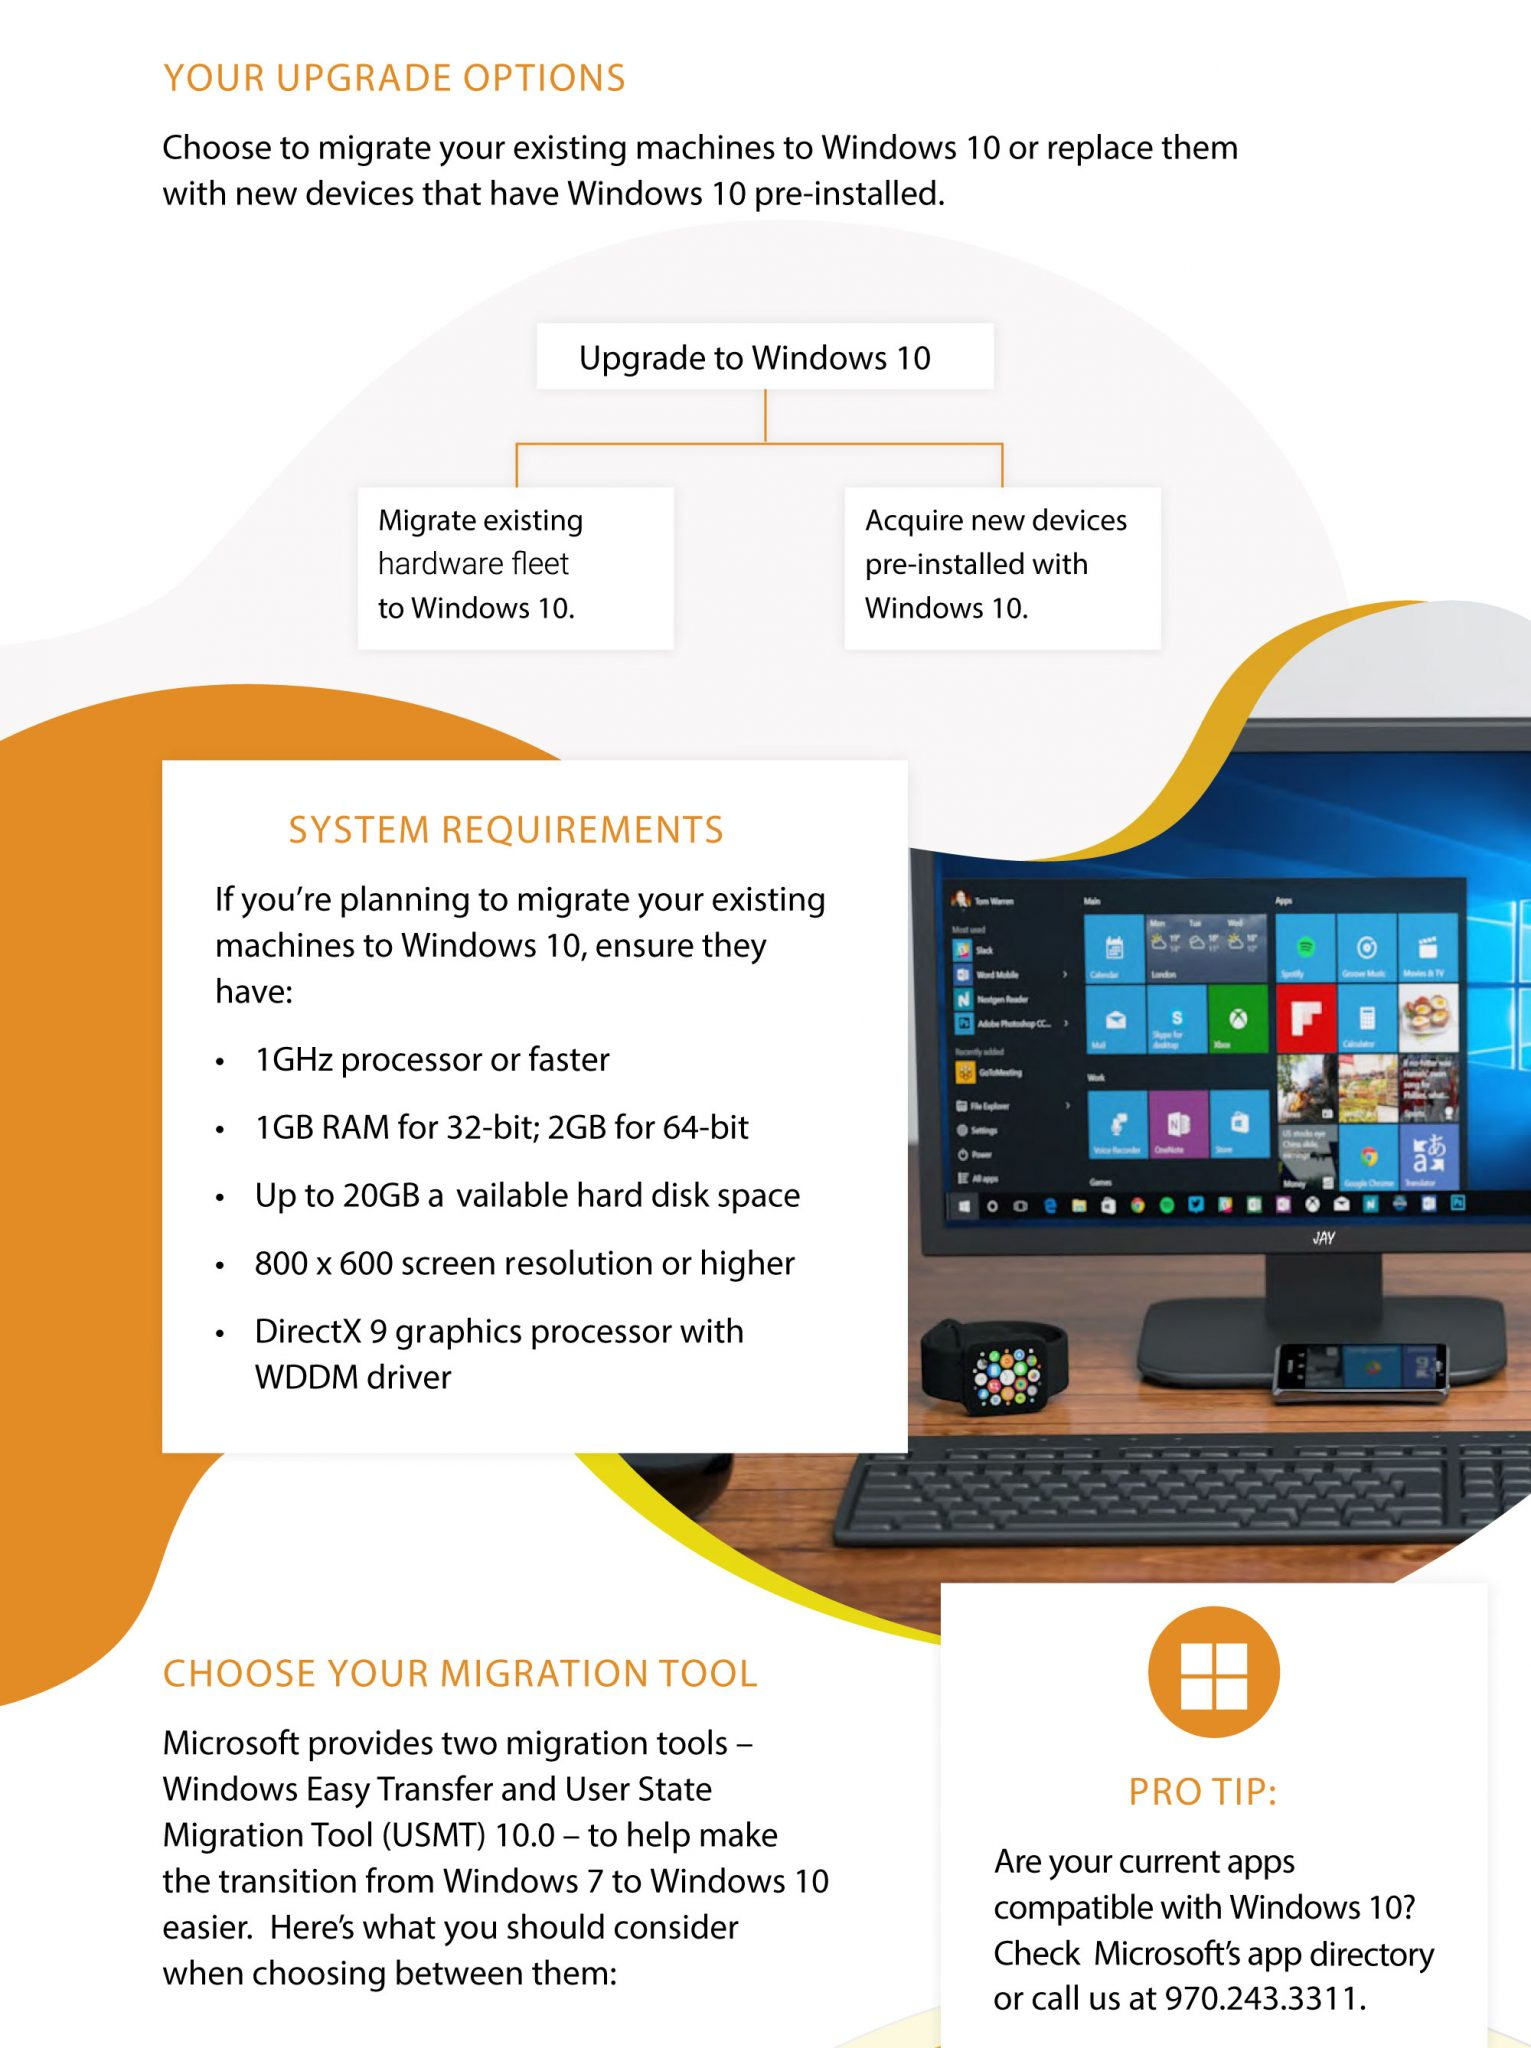 End of Service Guide for Windows 7 - Networks Unlimited